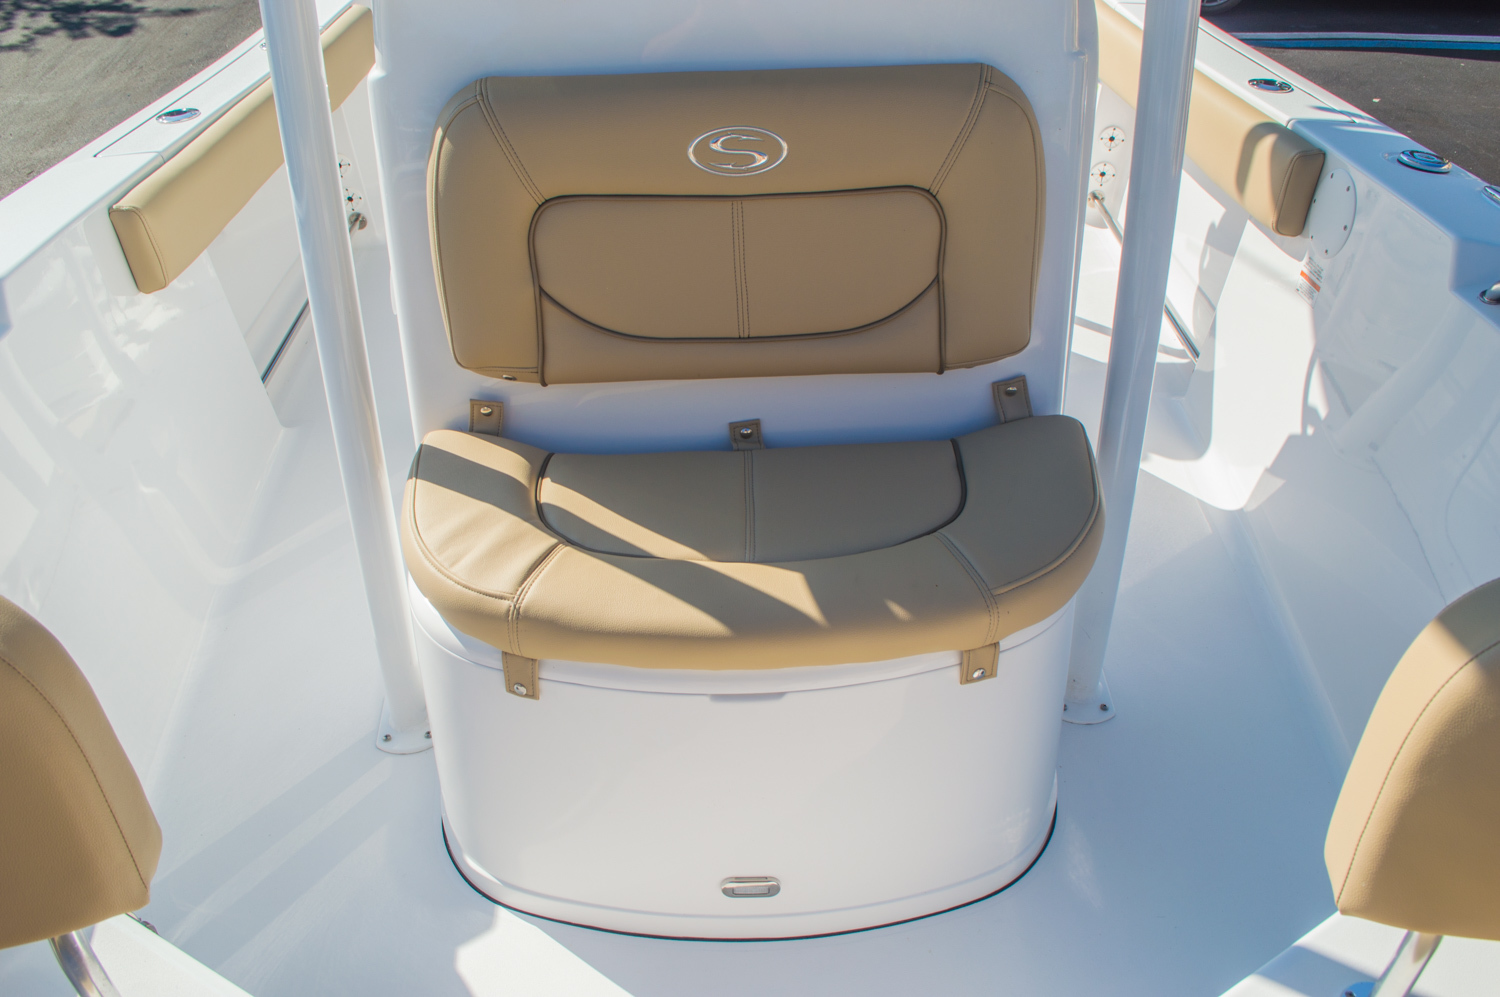 Thumbnail 51 for New 2016 Sportsman Open 212 Center Console boat for sale in West Palm Beach, FL